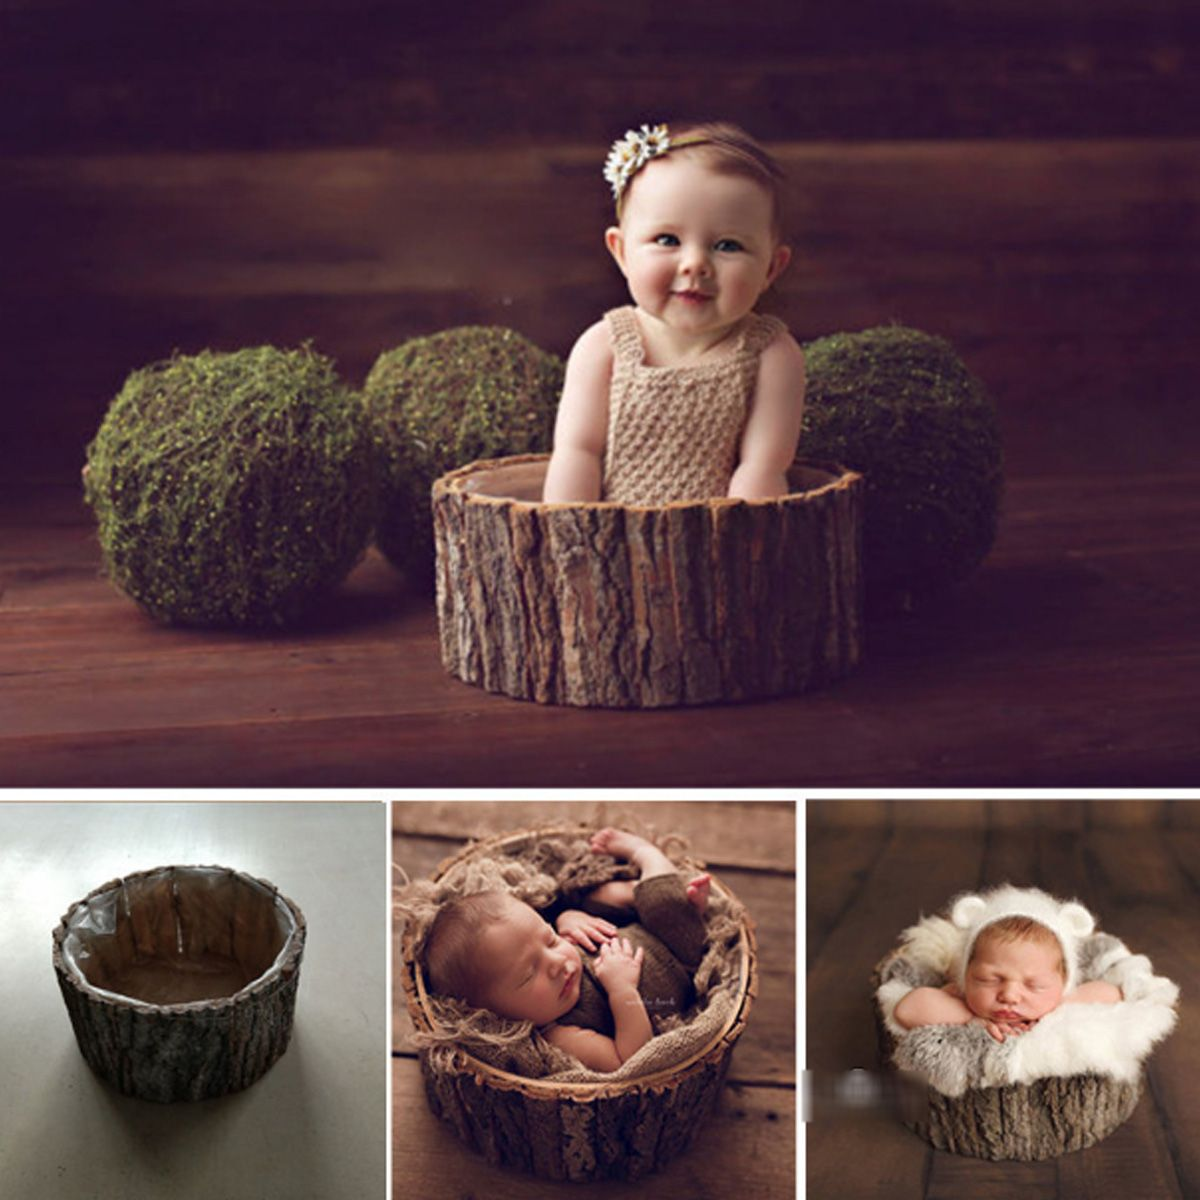 Newborn Photography Props Basket Fashion Baby Wool Blanket  Photo Props Backdrop Background Studio Shoots GiftNewborn Photography Props Basket Fashion Baby Wool Blanket  Photo Props Backdrop Background Studio Shoots Gift